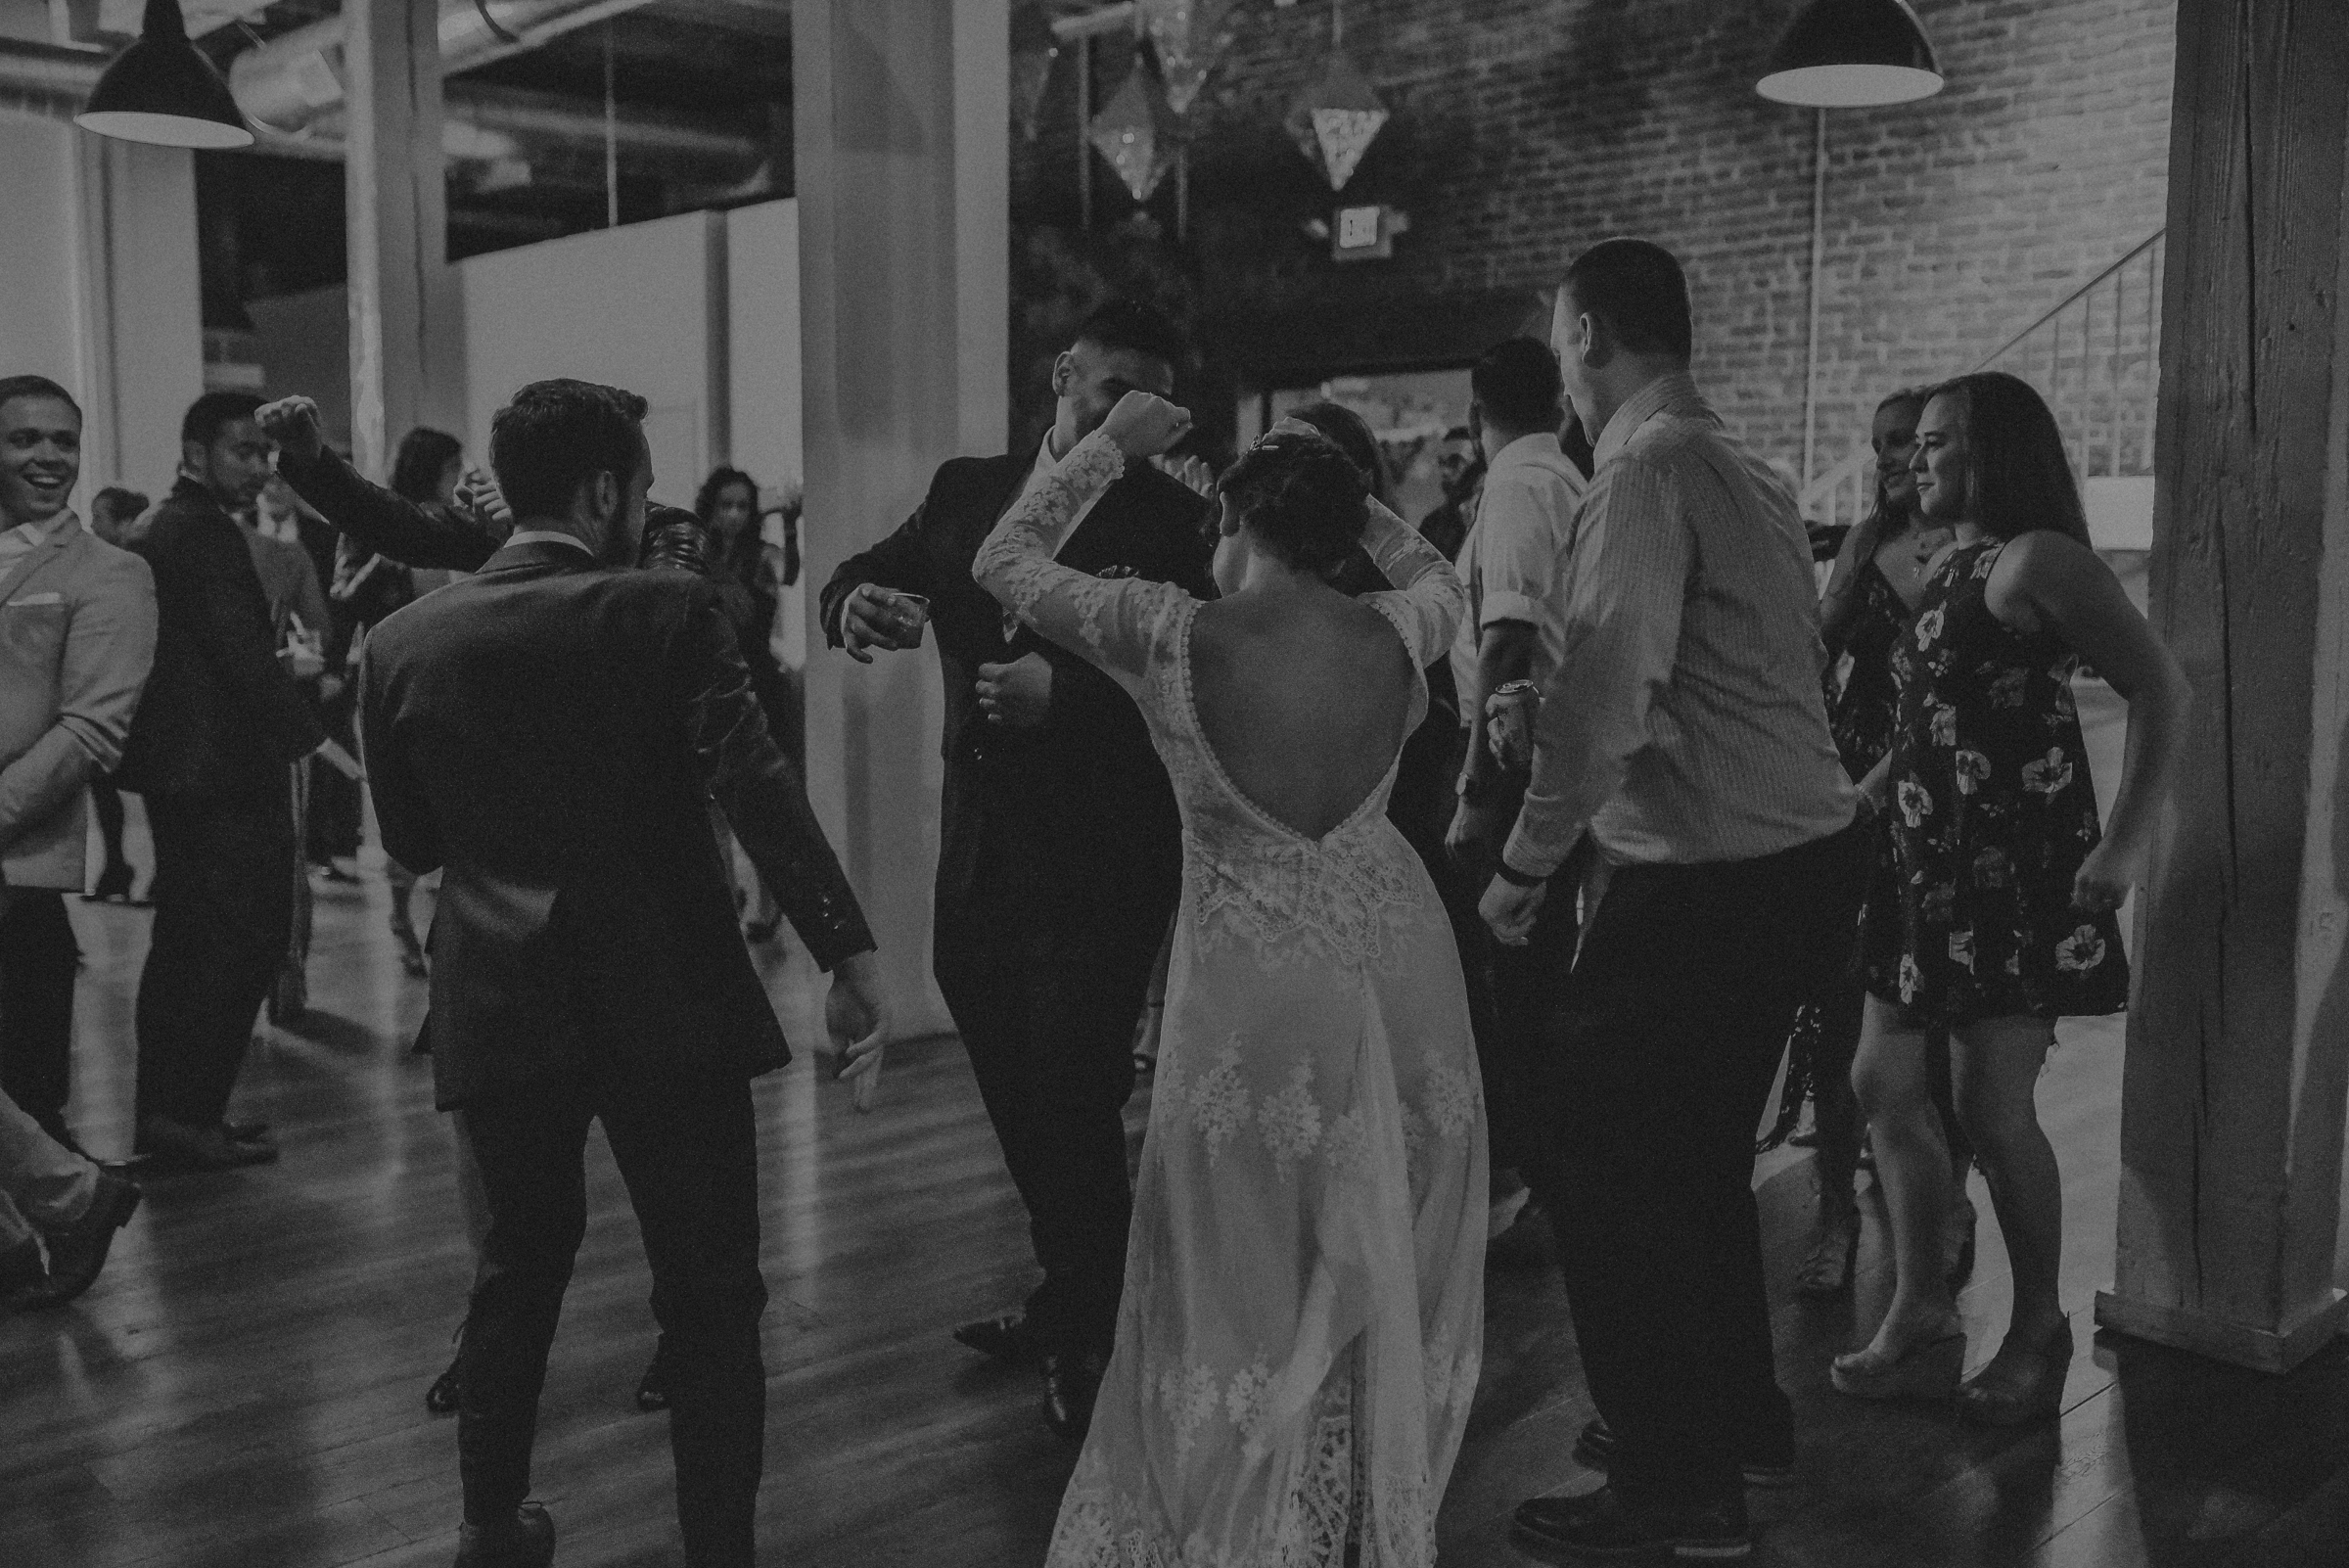 Isaiah + Taylor Photography - The Unique Space Wedding, Los Angeles Wedding Photography 160.jpg